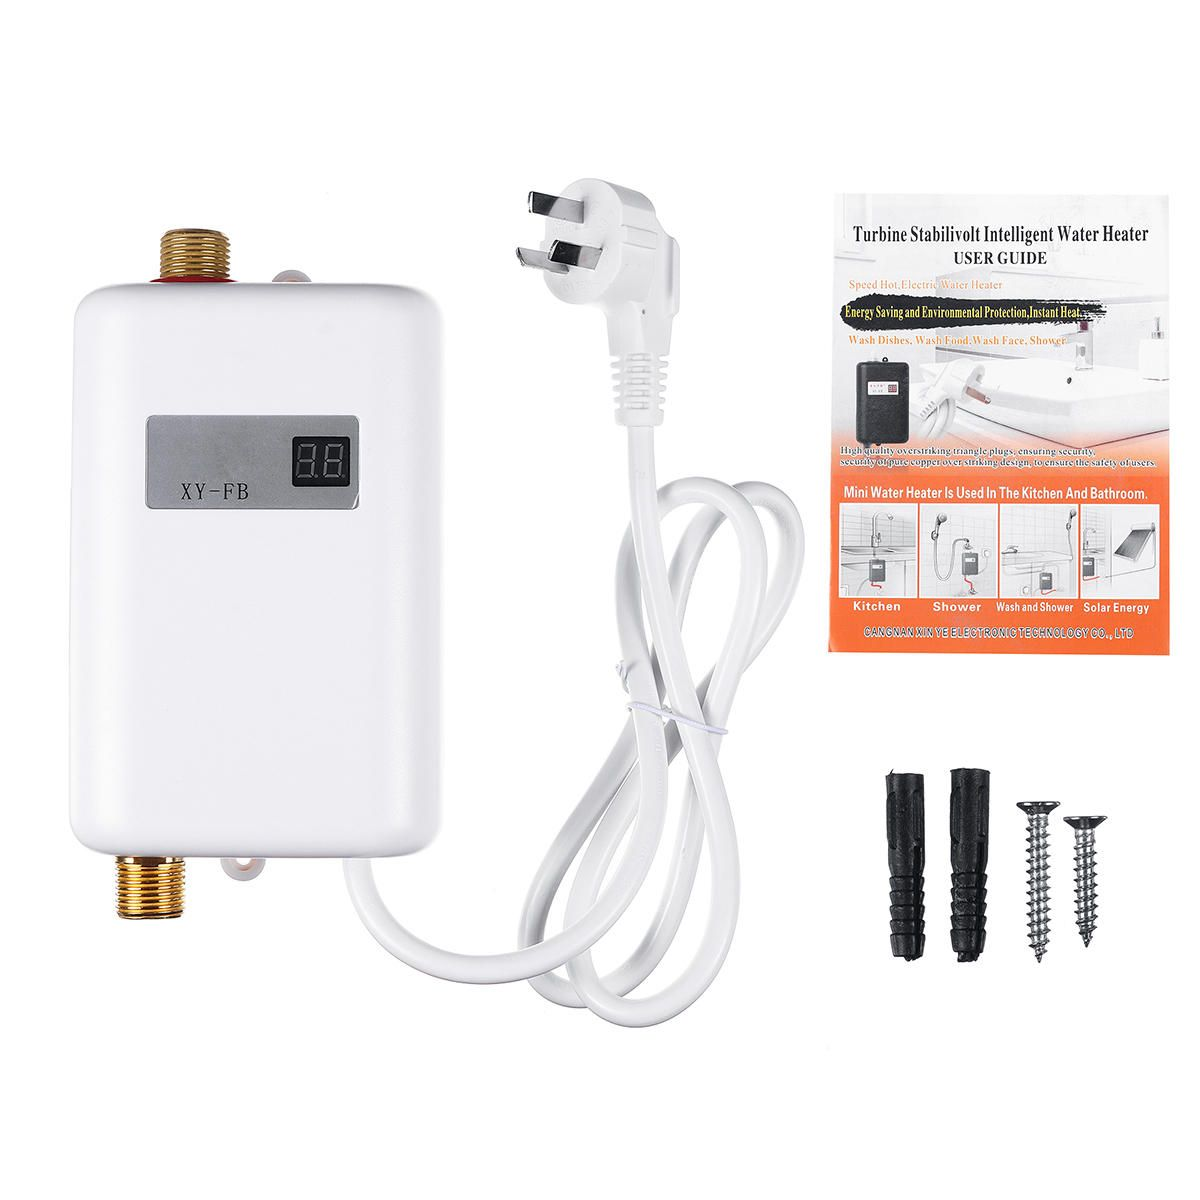 ANM US$62.29 220-240V 3.4KW Mini Electric Tankless Instant Hot Water Heater For Bathroom Kitchen Washing